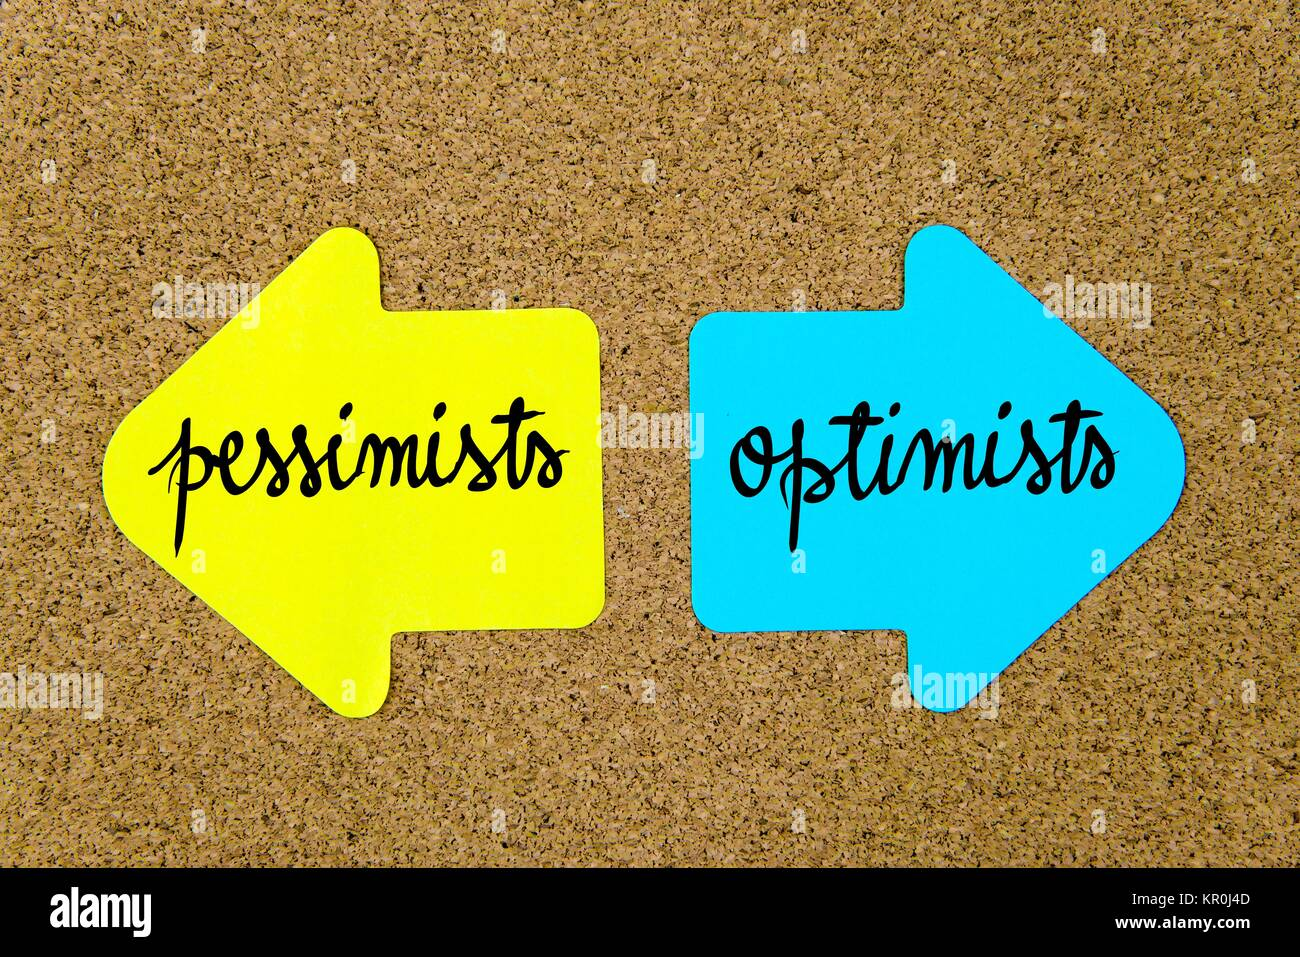 Message Pessimists versus Optimists - Stock Image